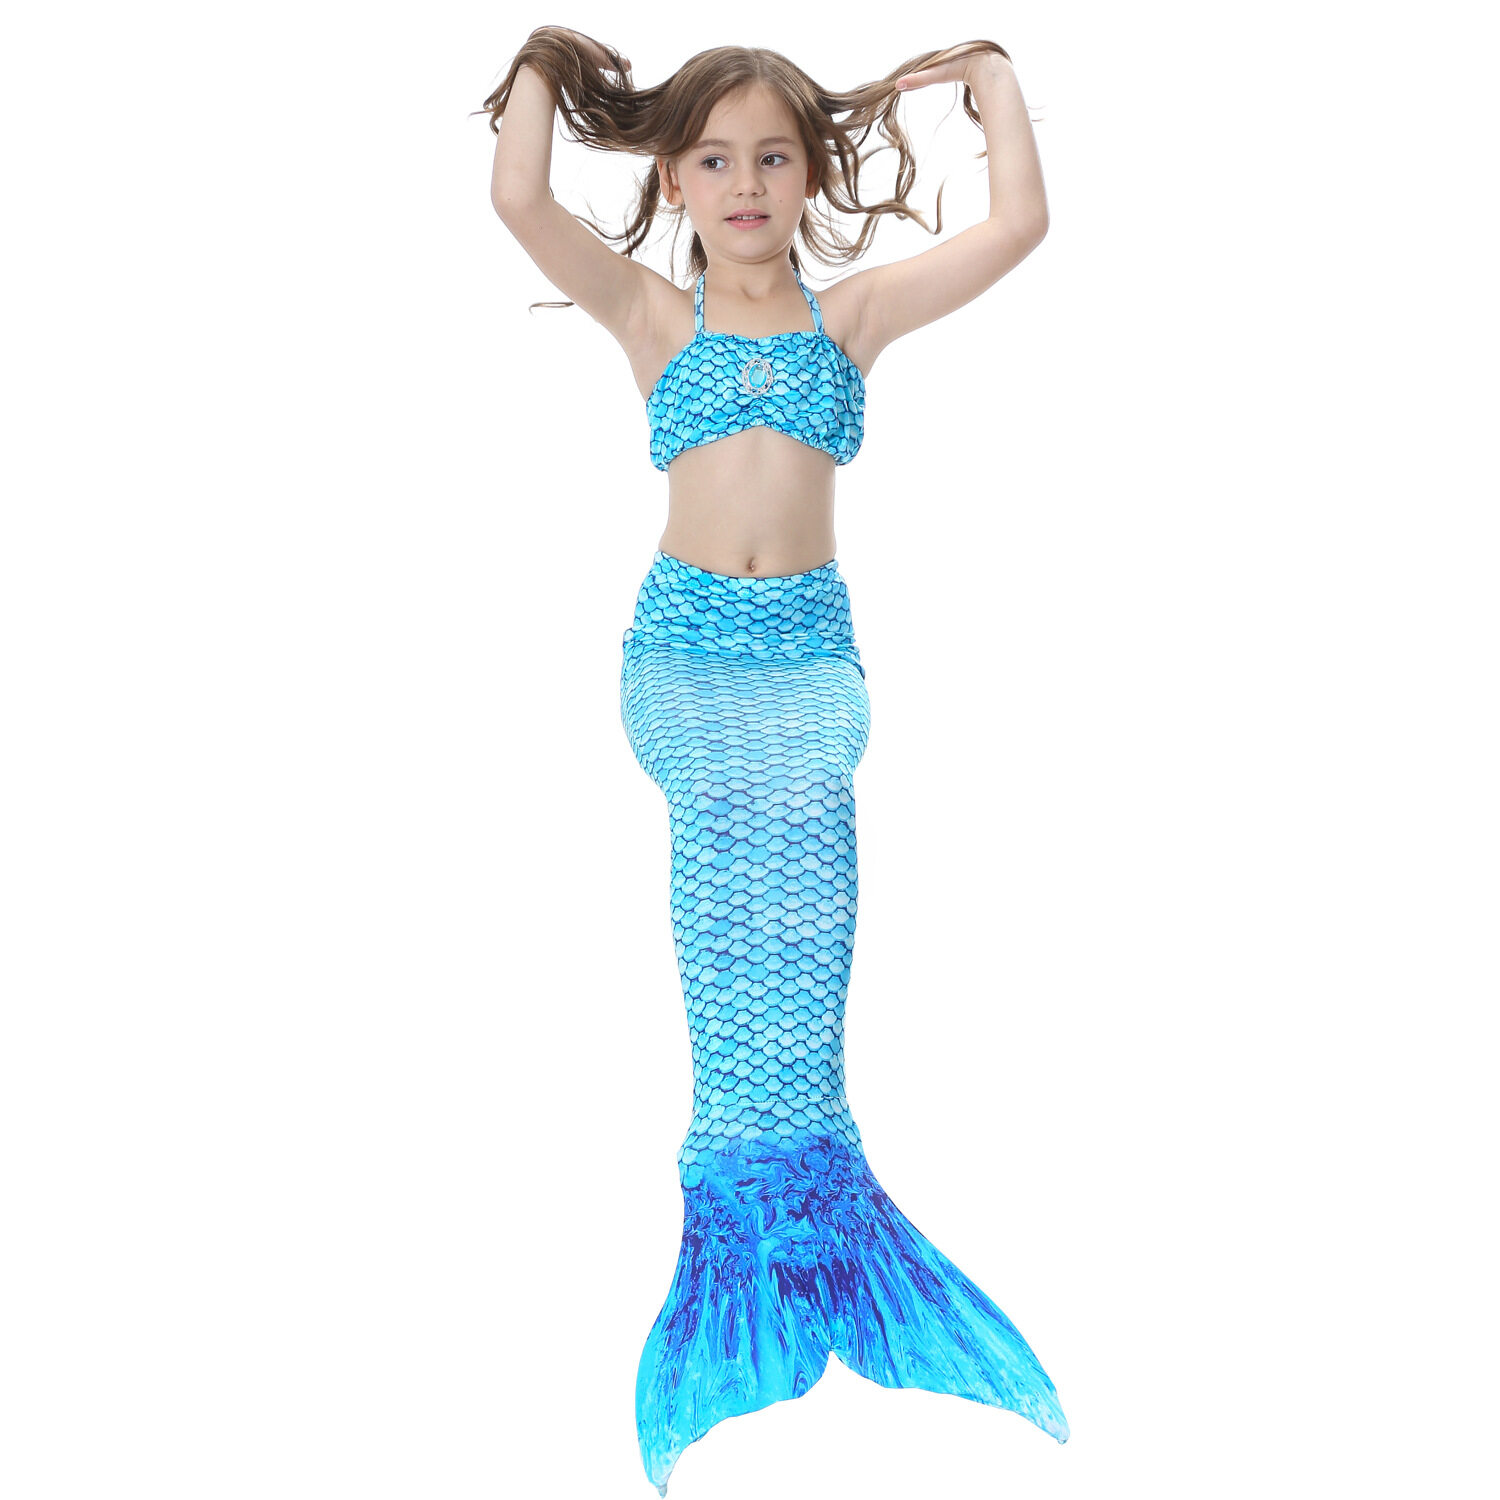 Baby Costumes for sale - Costumes For Toddlers online brands, prices ...